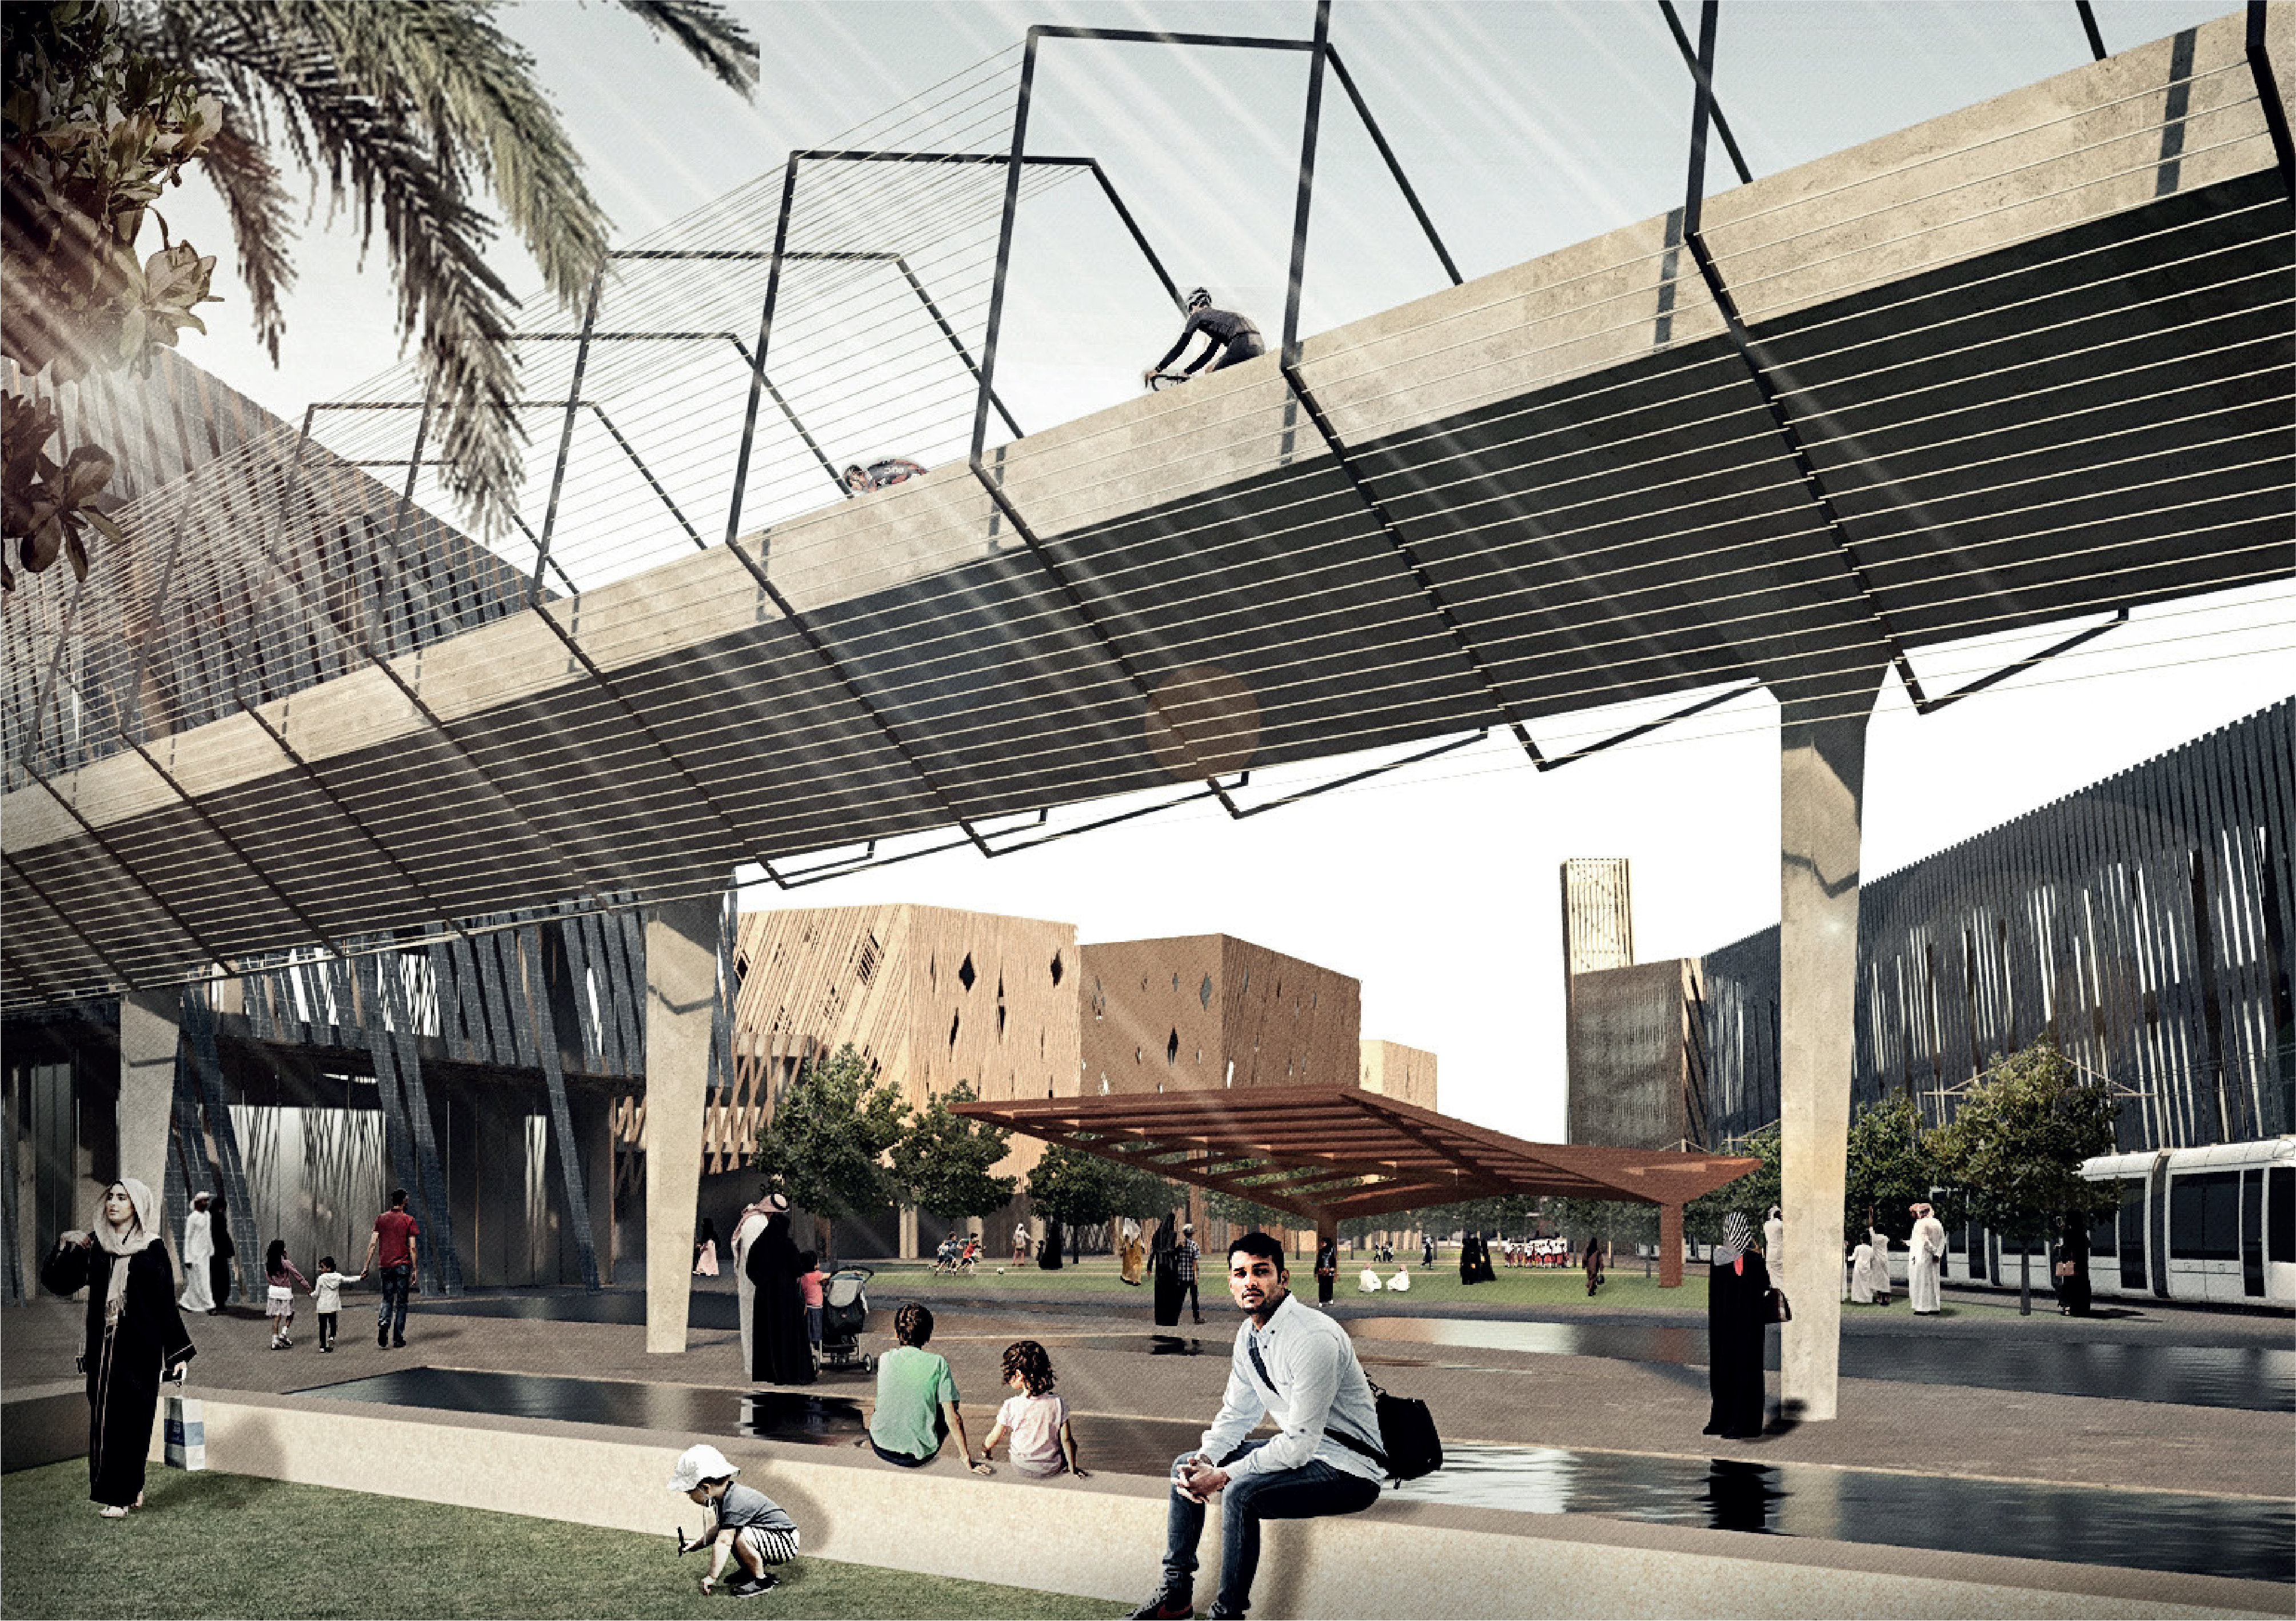 Rendering of the planned Sports Boulevard in Riyadh, Saudi Arabia (Arriyadh Development Authority)